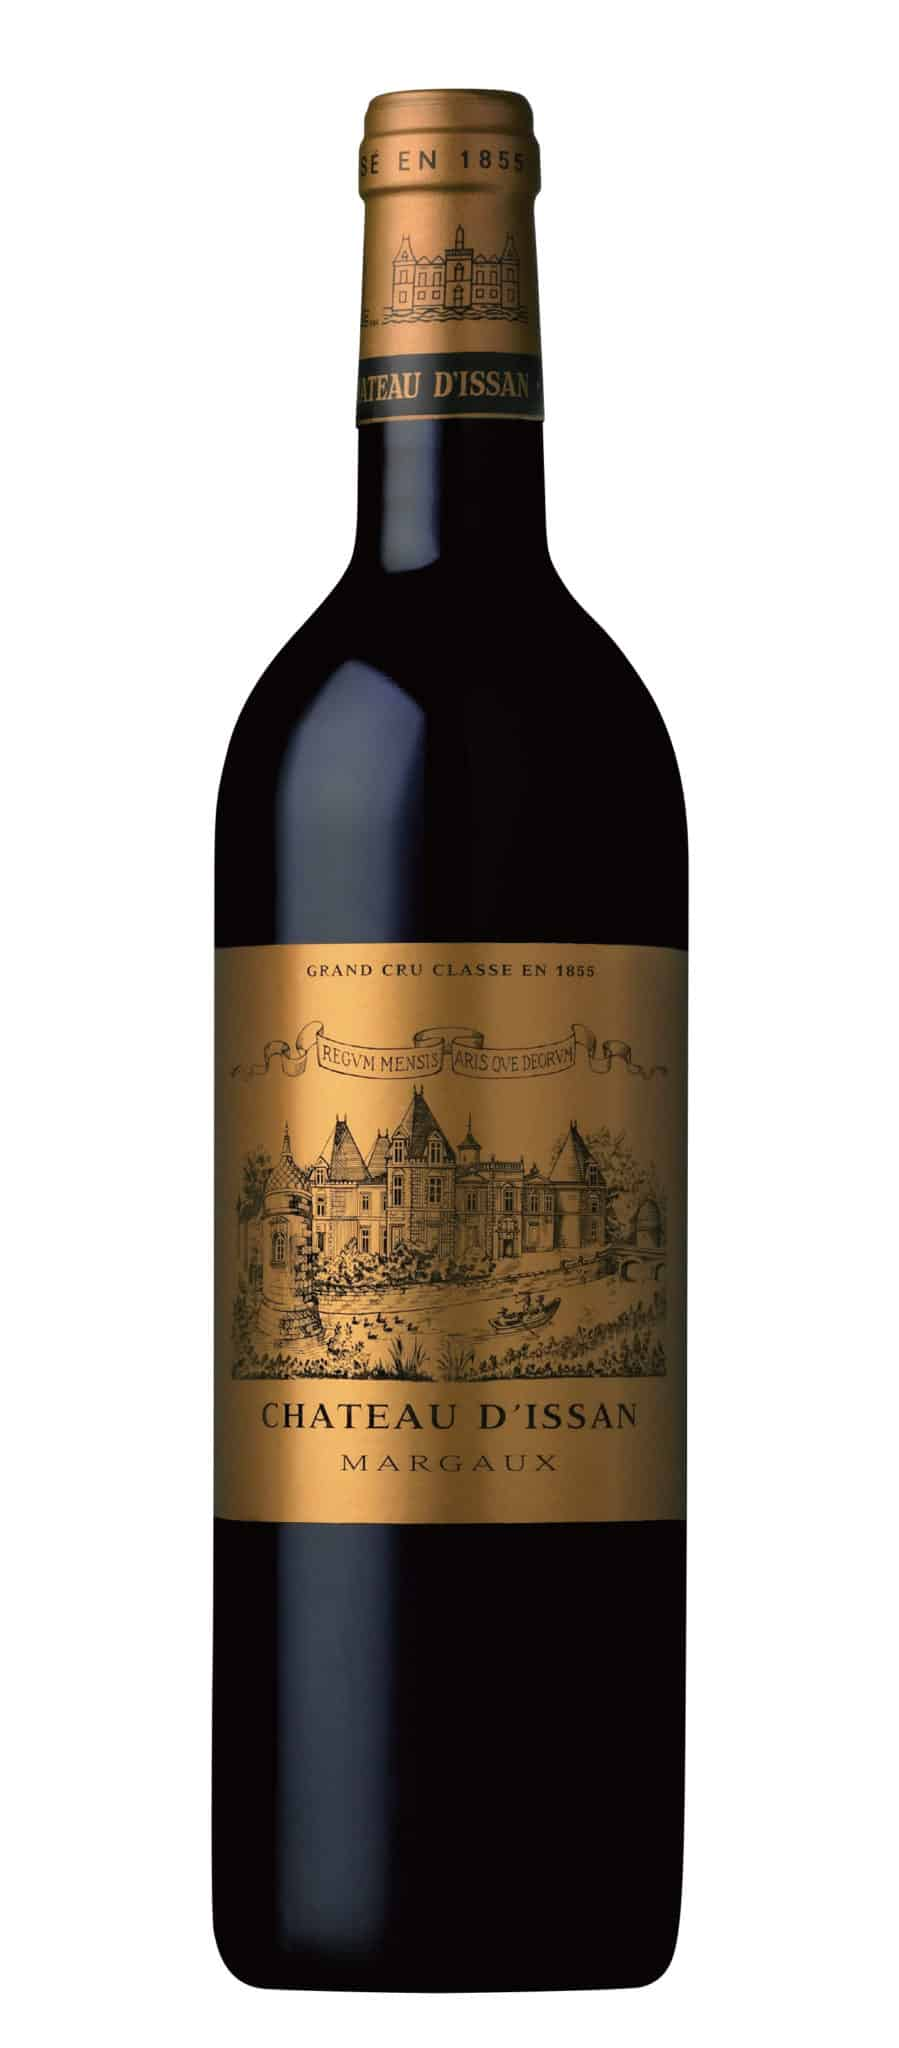 Chateau D'Issan 2014